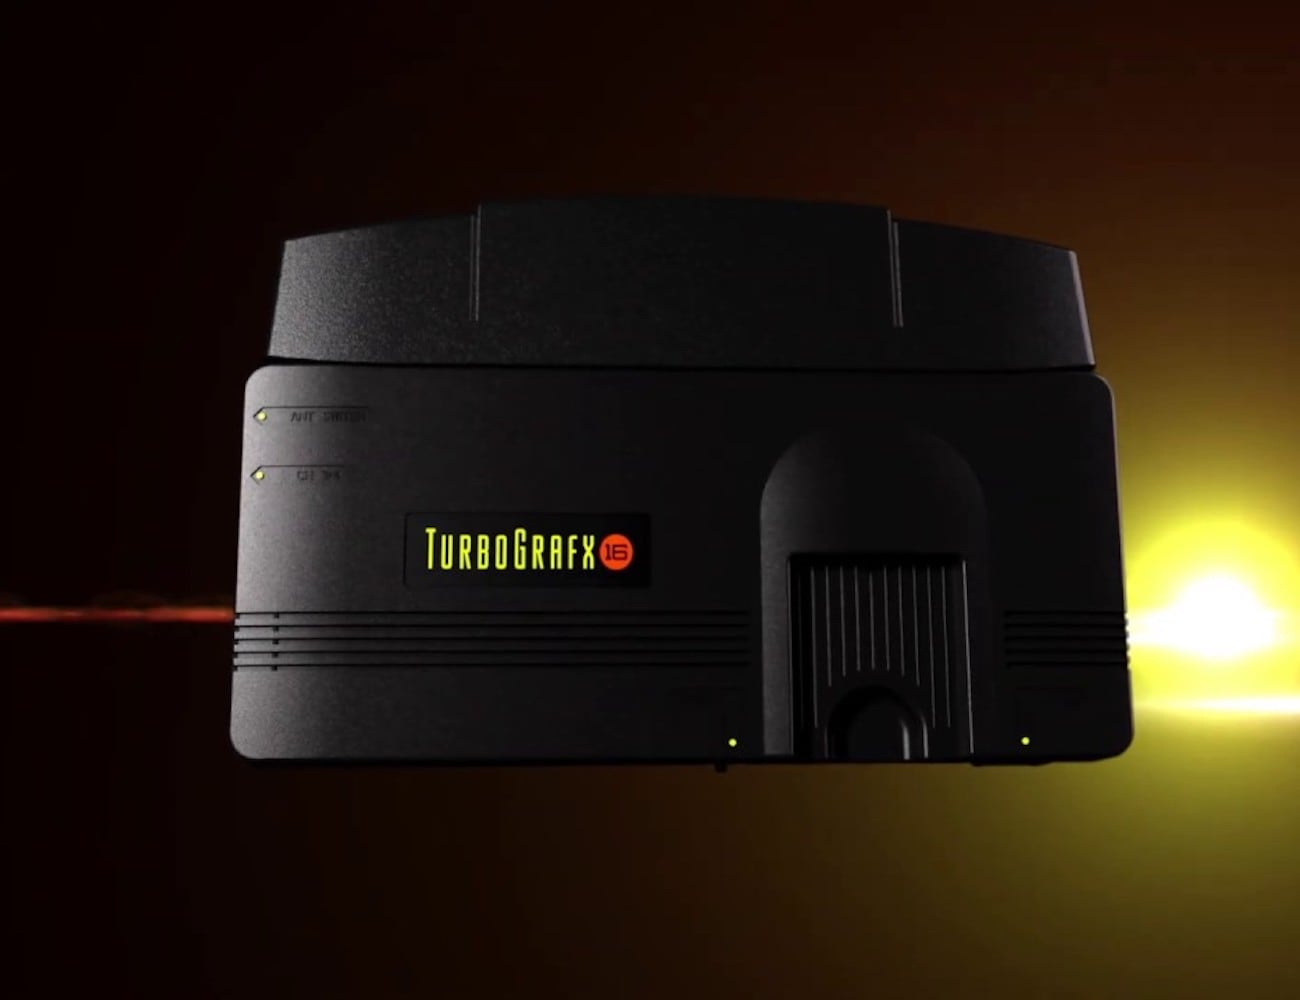 Konami TurboGrafx-16 mini Compact Video Game Console lets you relive the past